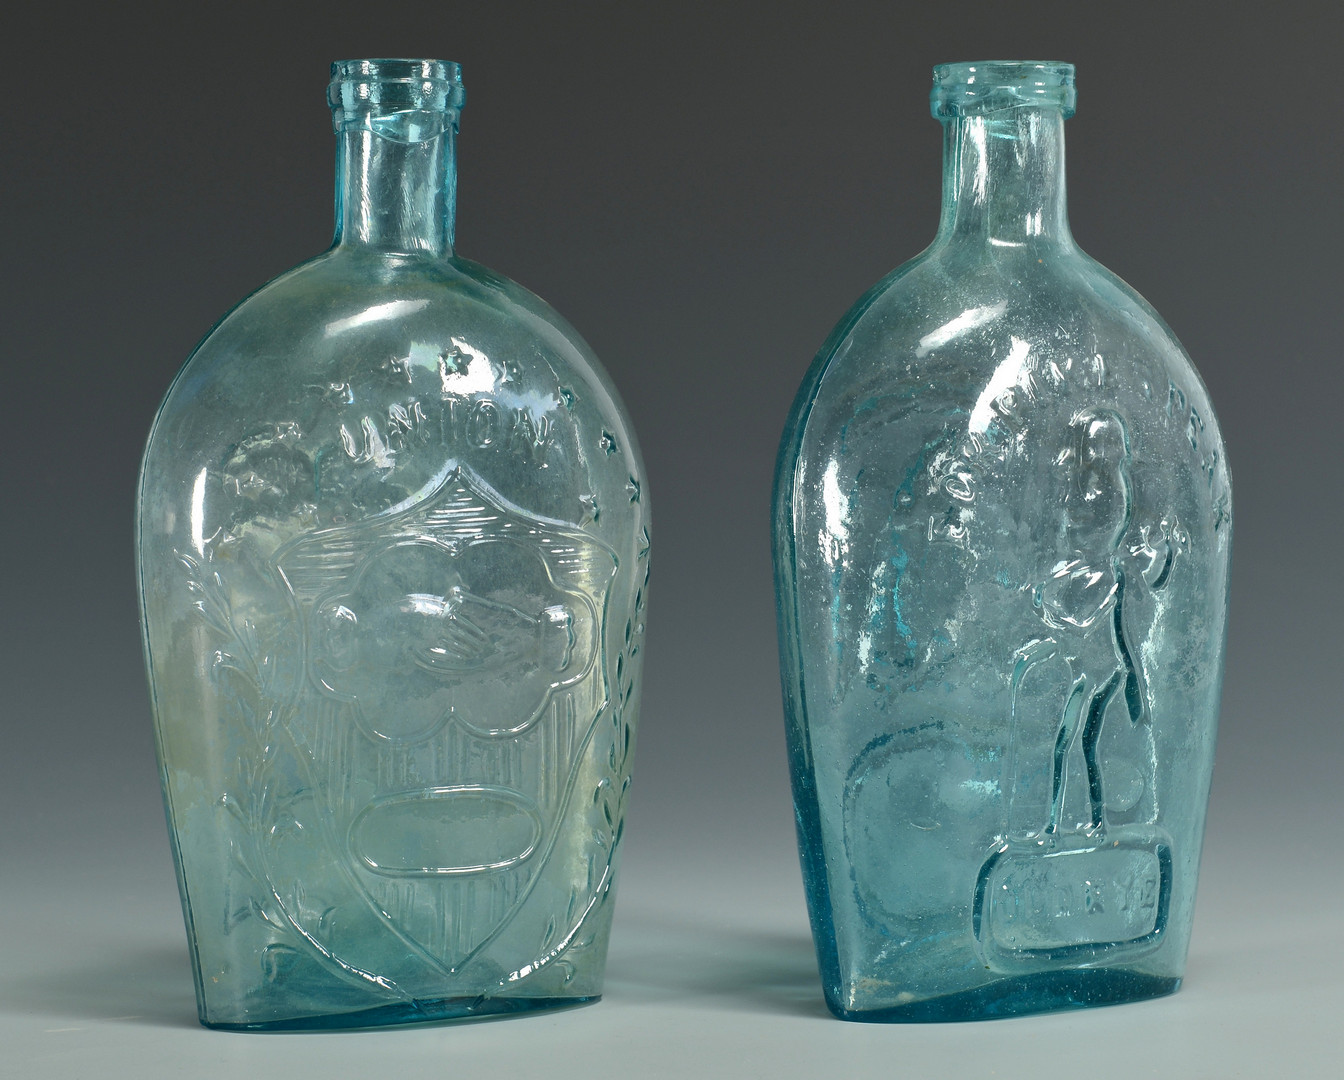 Lot 354: 19th C. Butter Molds and Flasks